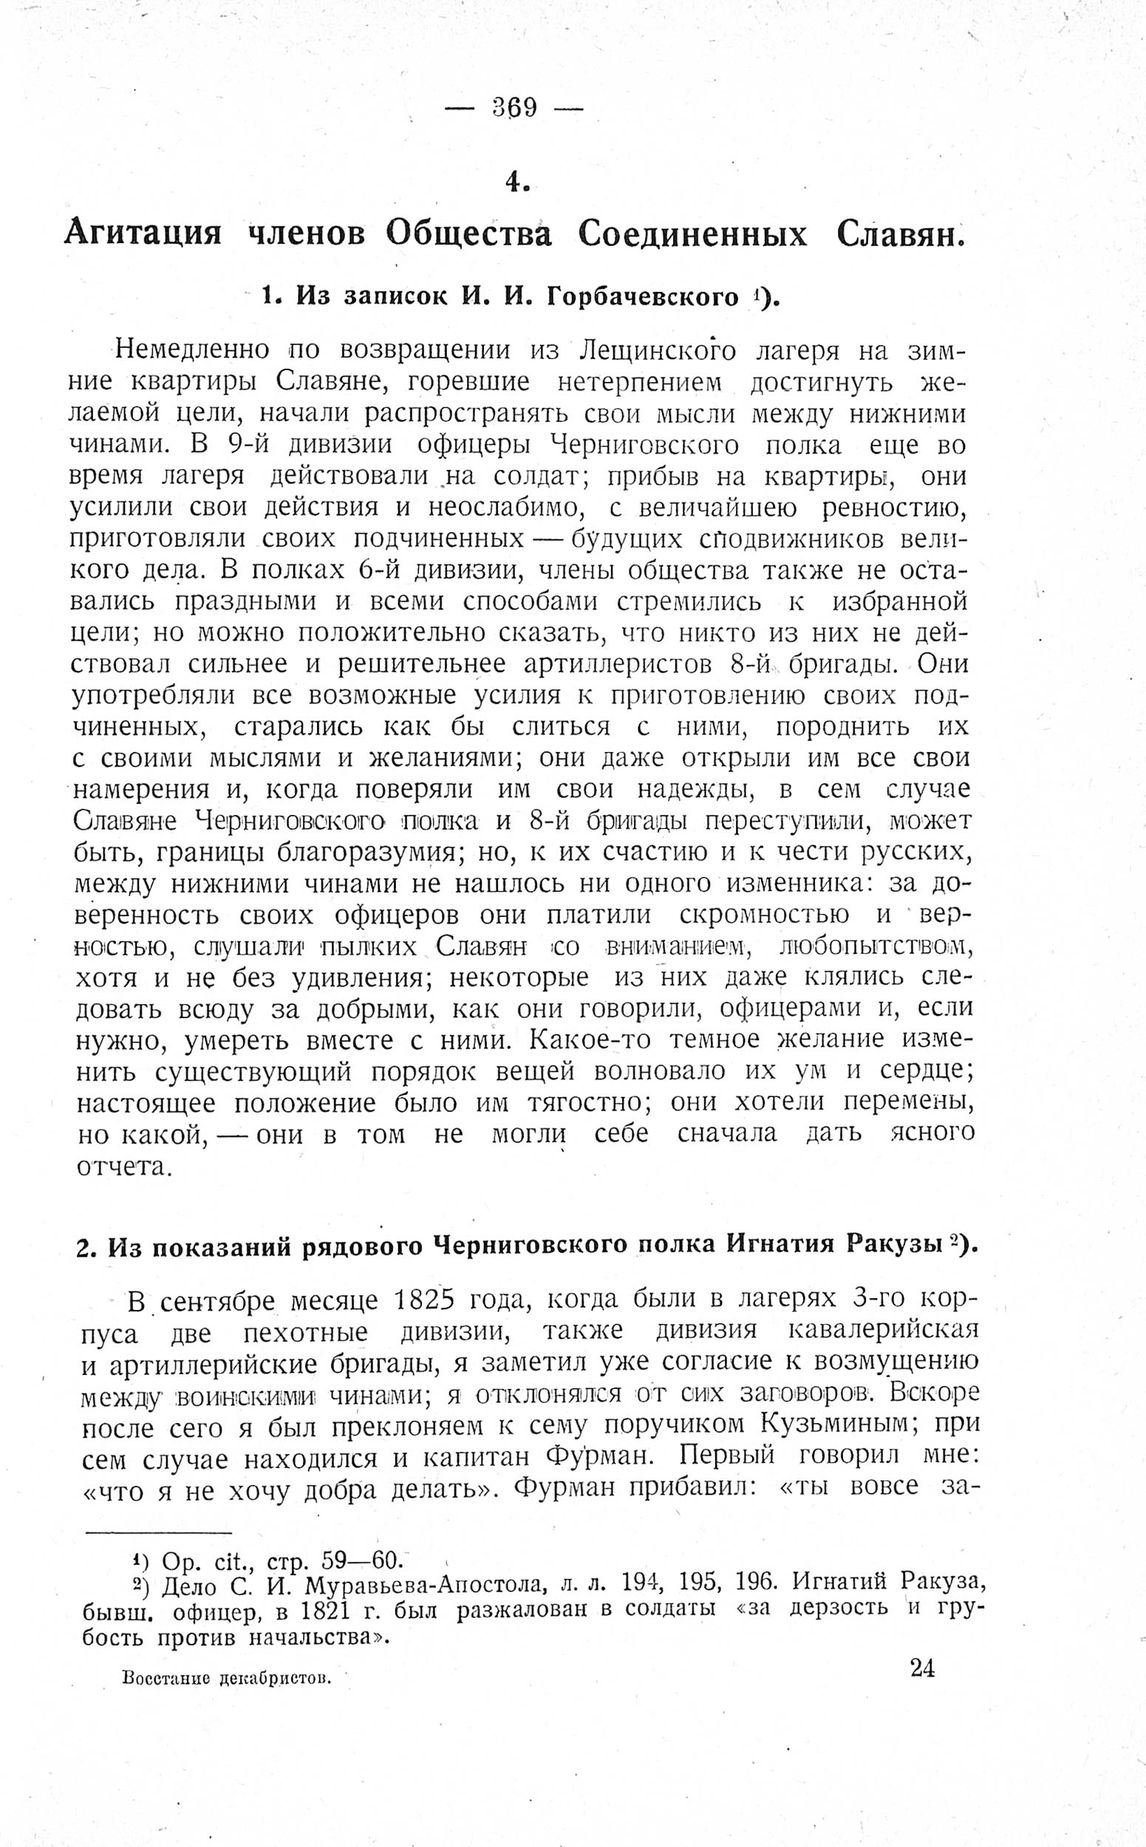 http://elib.shpl.ru/pages/625952/zooms/7